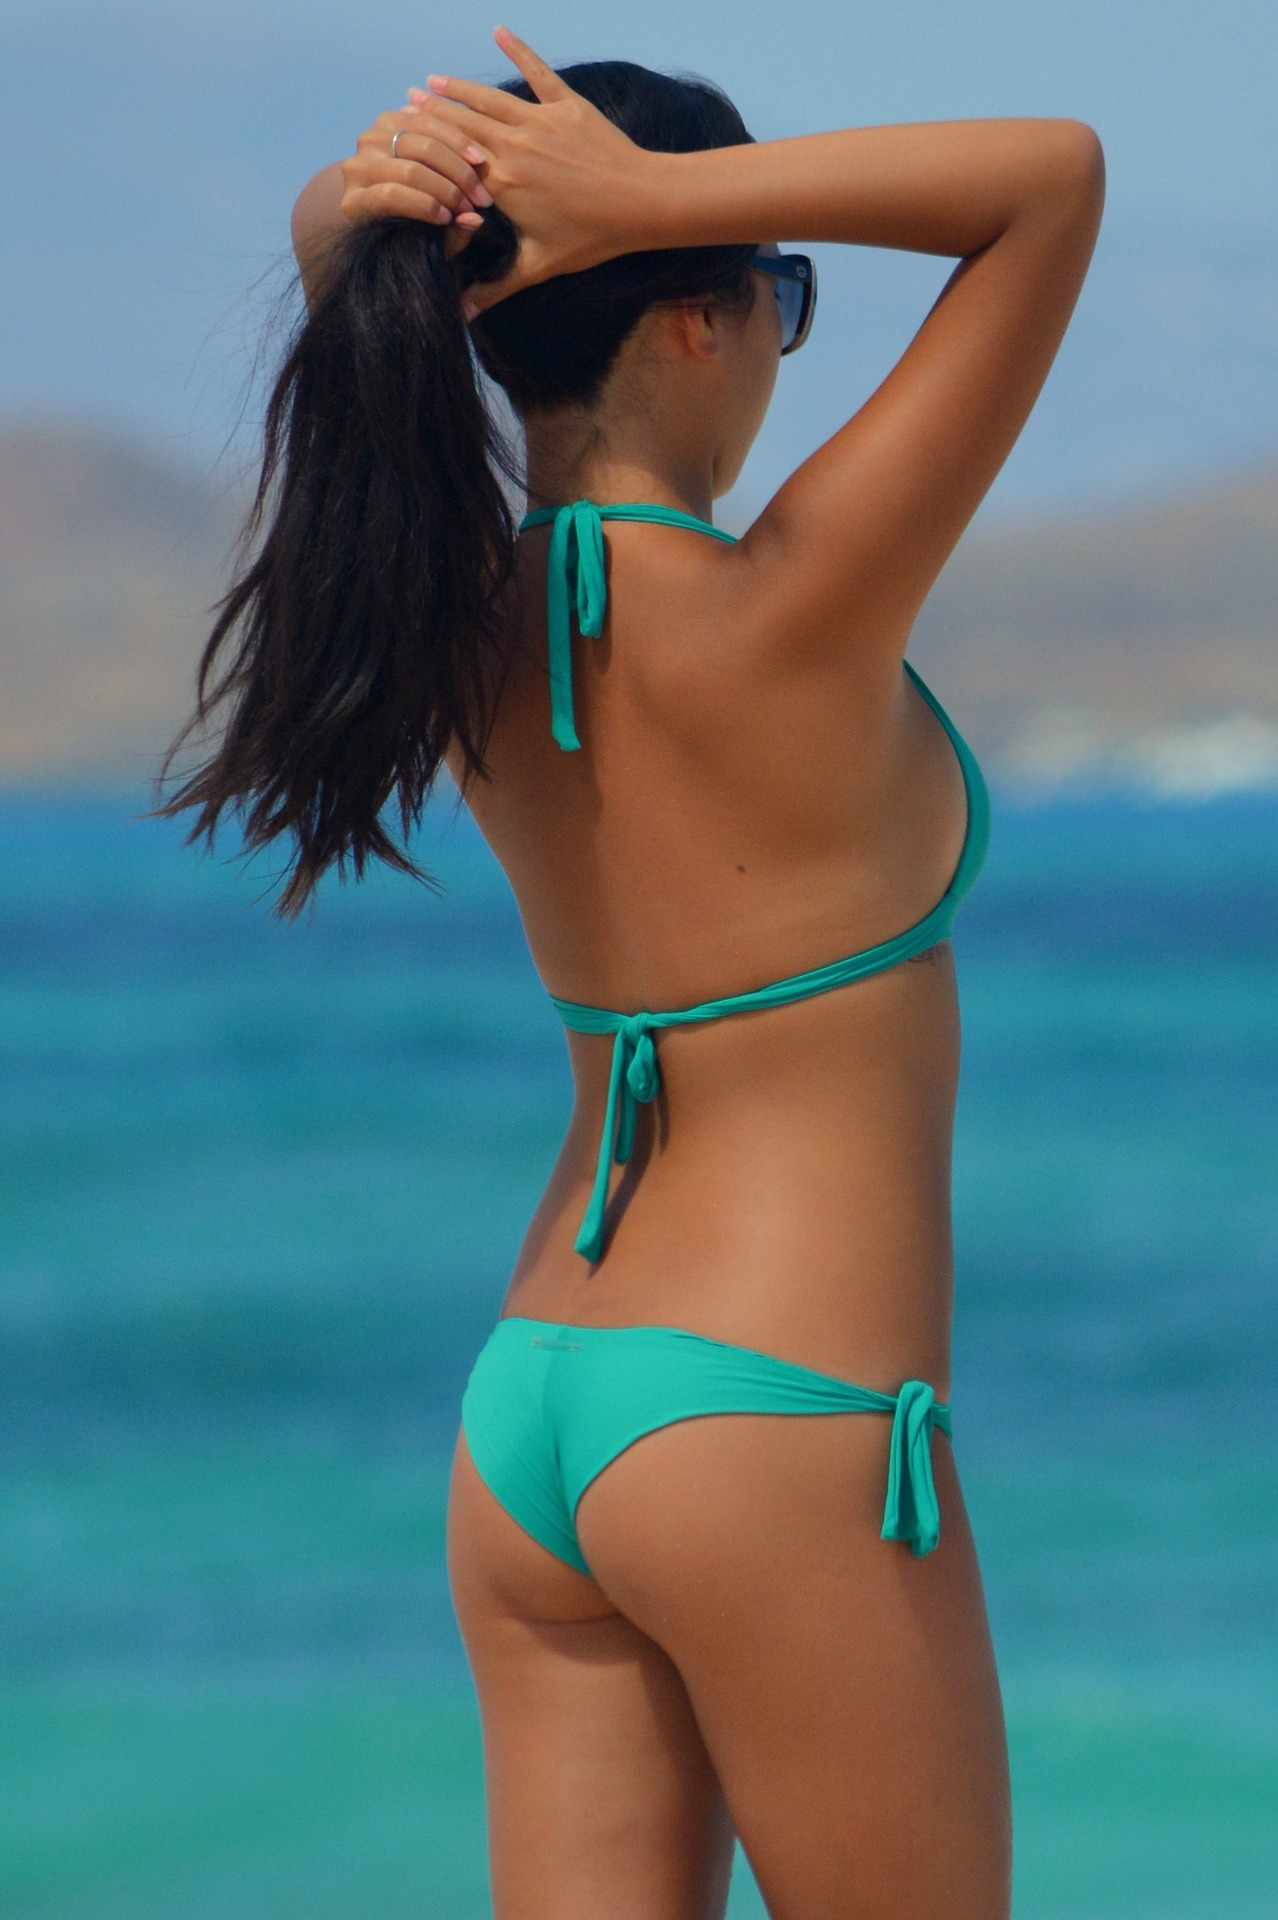 Bikini Buns   New At home Butt Shaping System  Image of woman 927210 1920